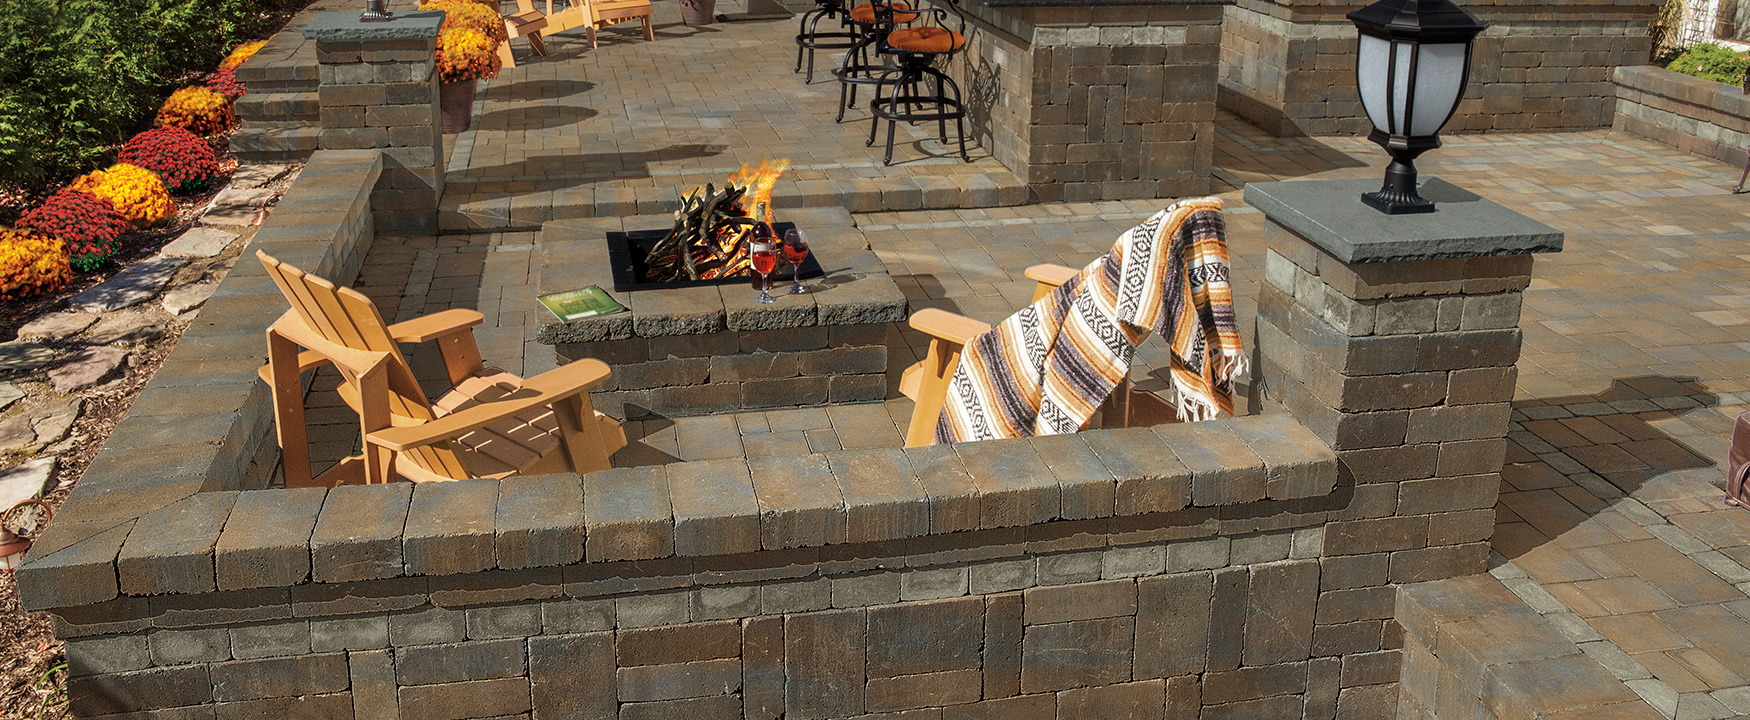 Outdoor living space with square fire pit, wall systems and patio